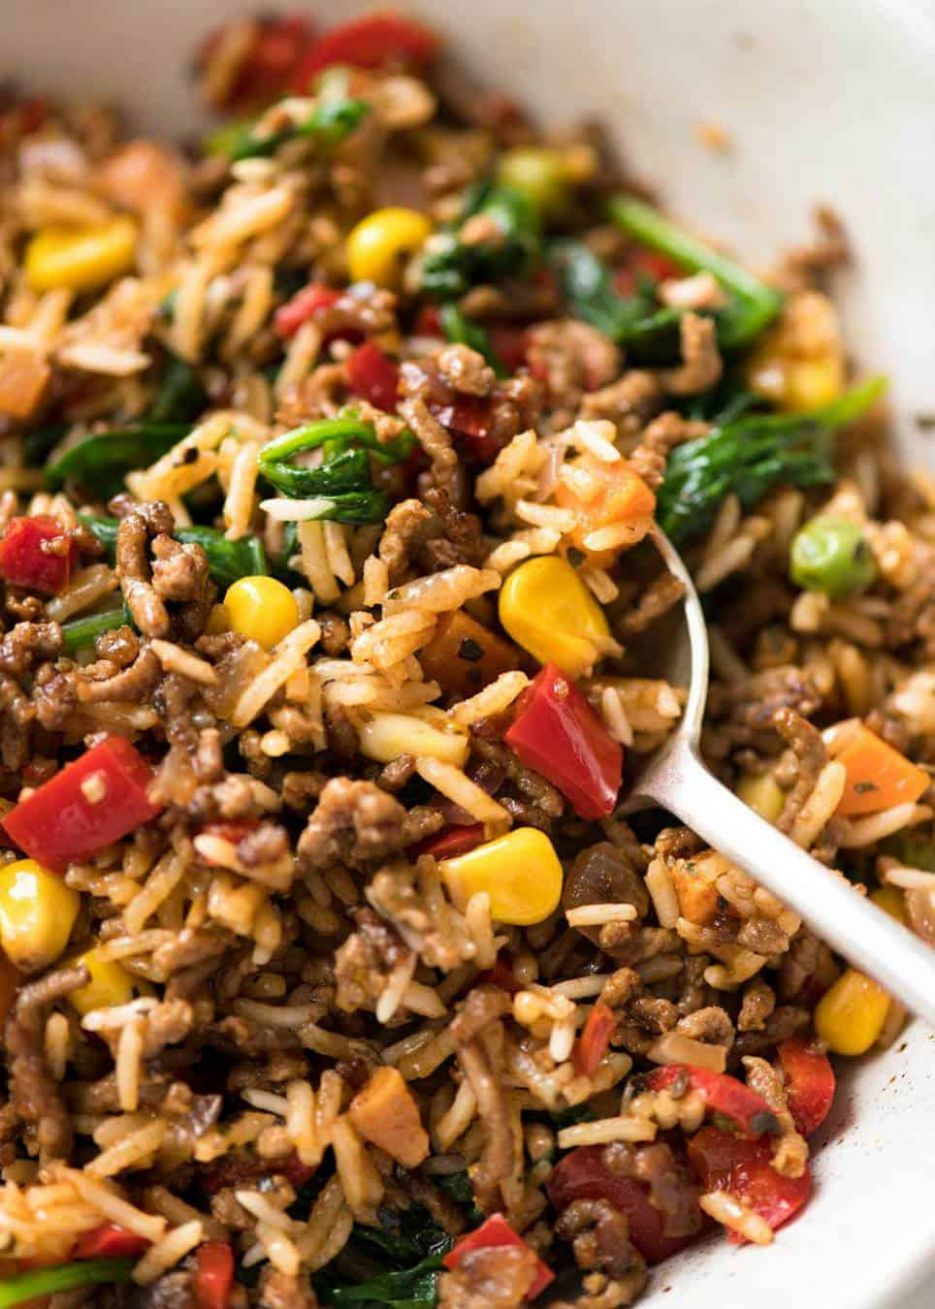 Beef and Rice with Veggies